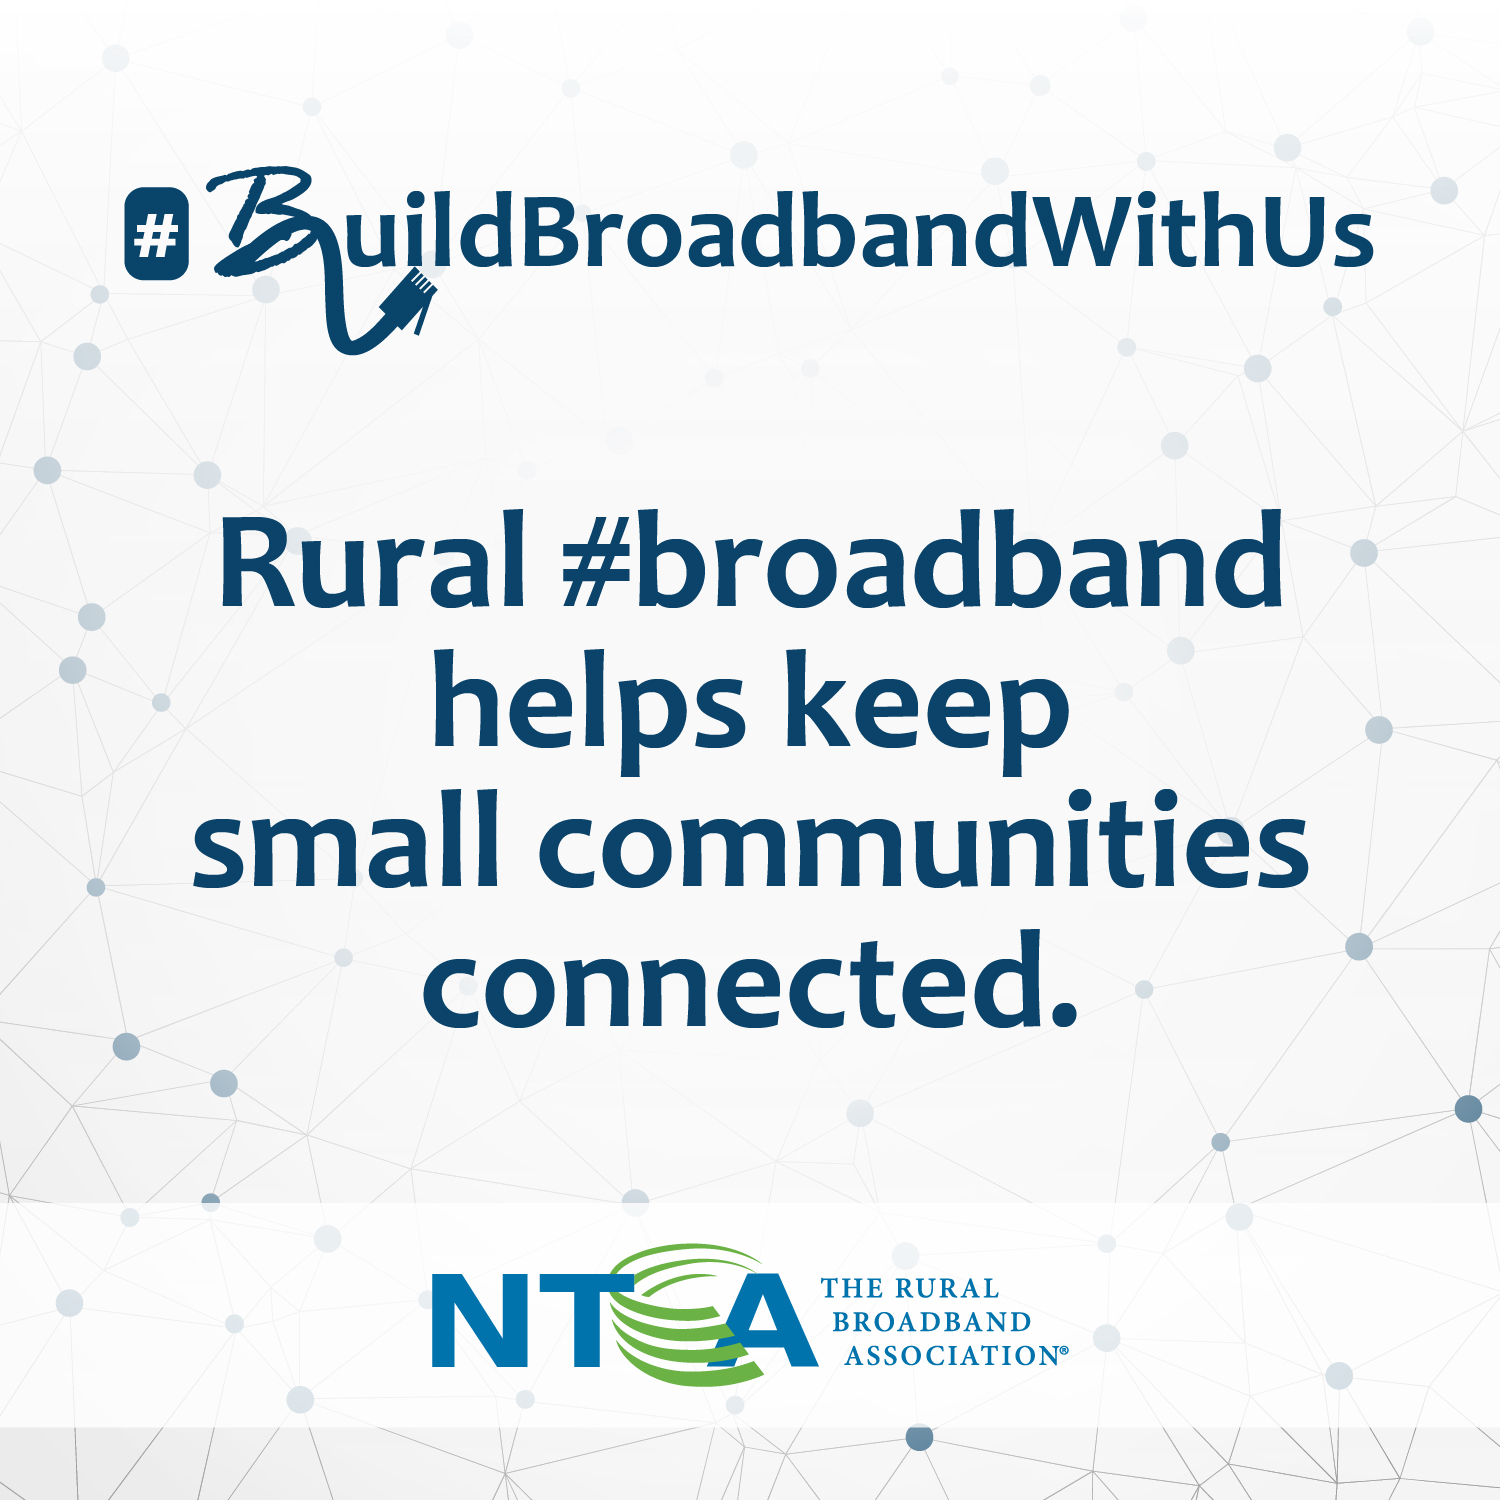 Rural broadband helps keep small communities connected.